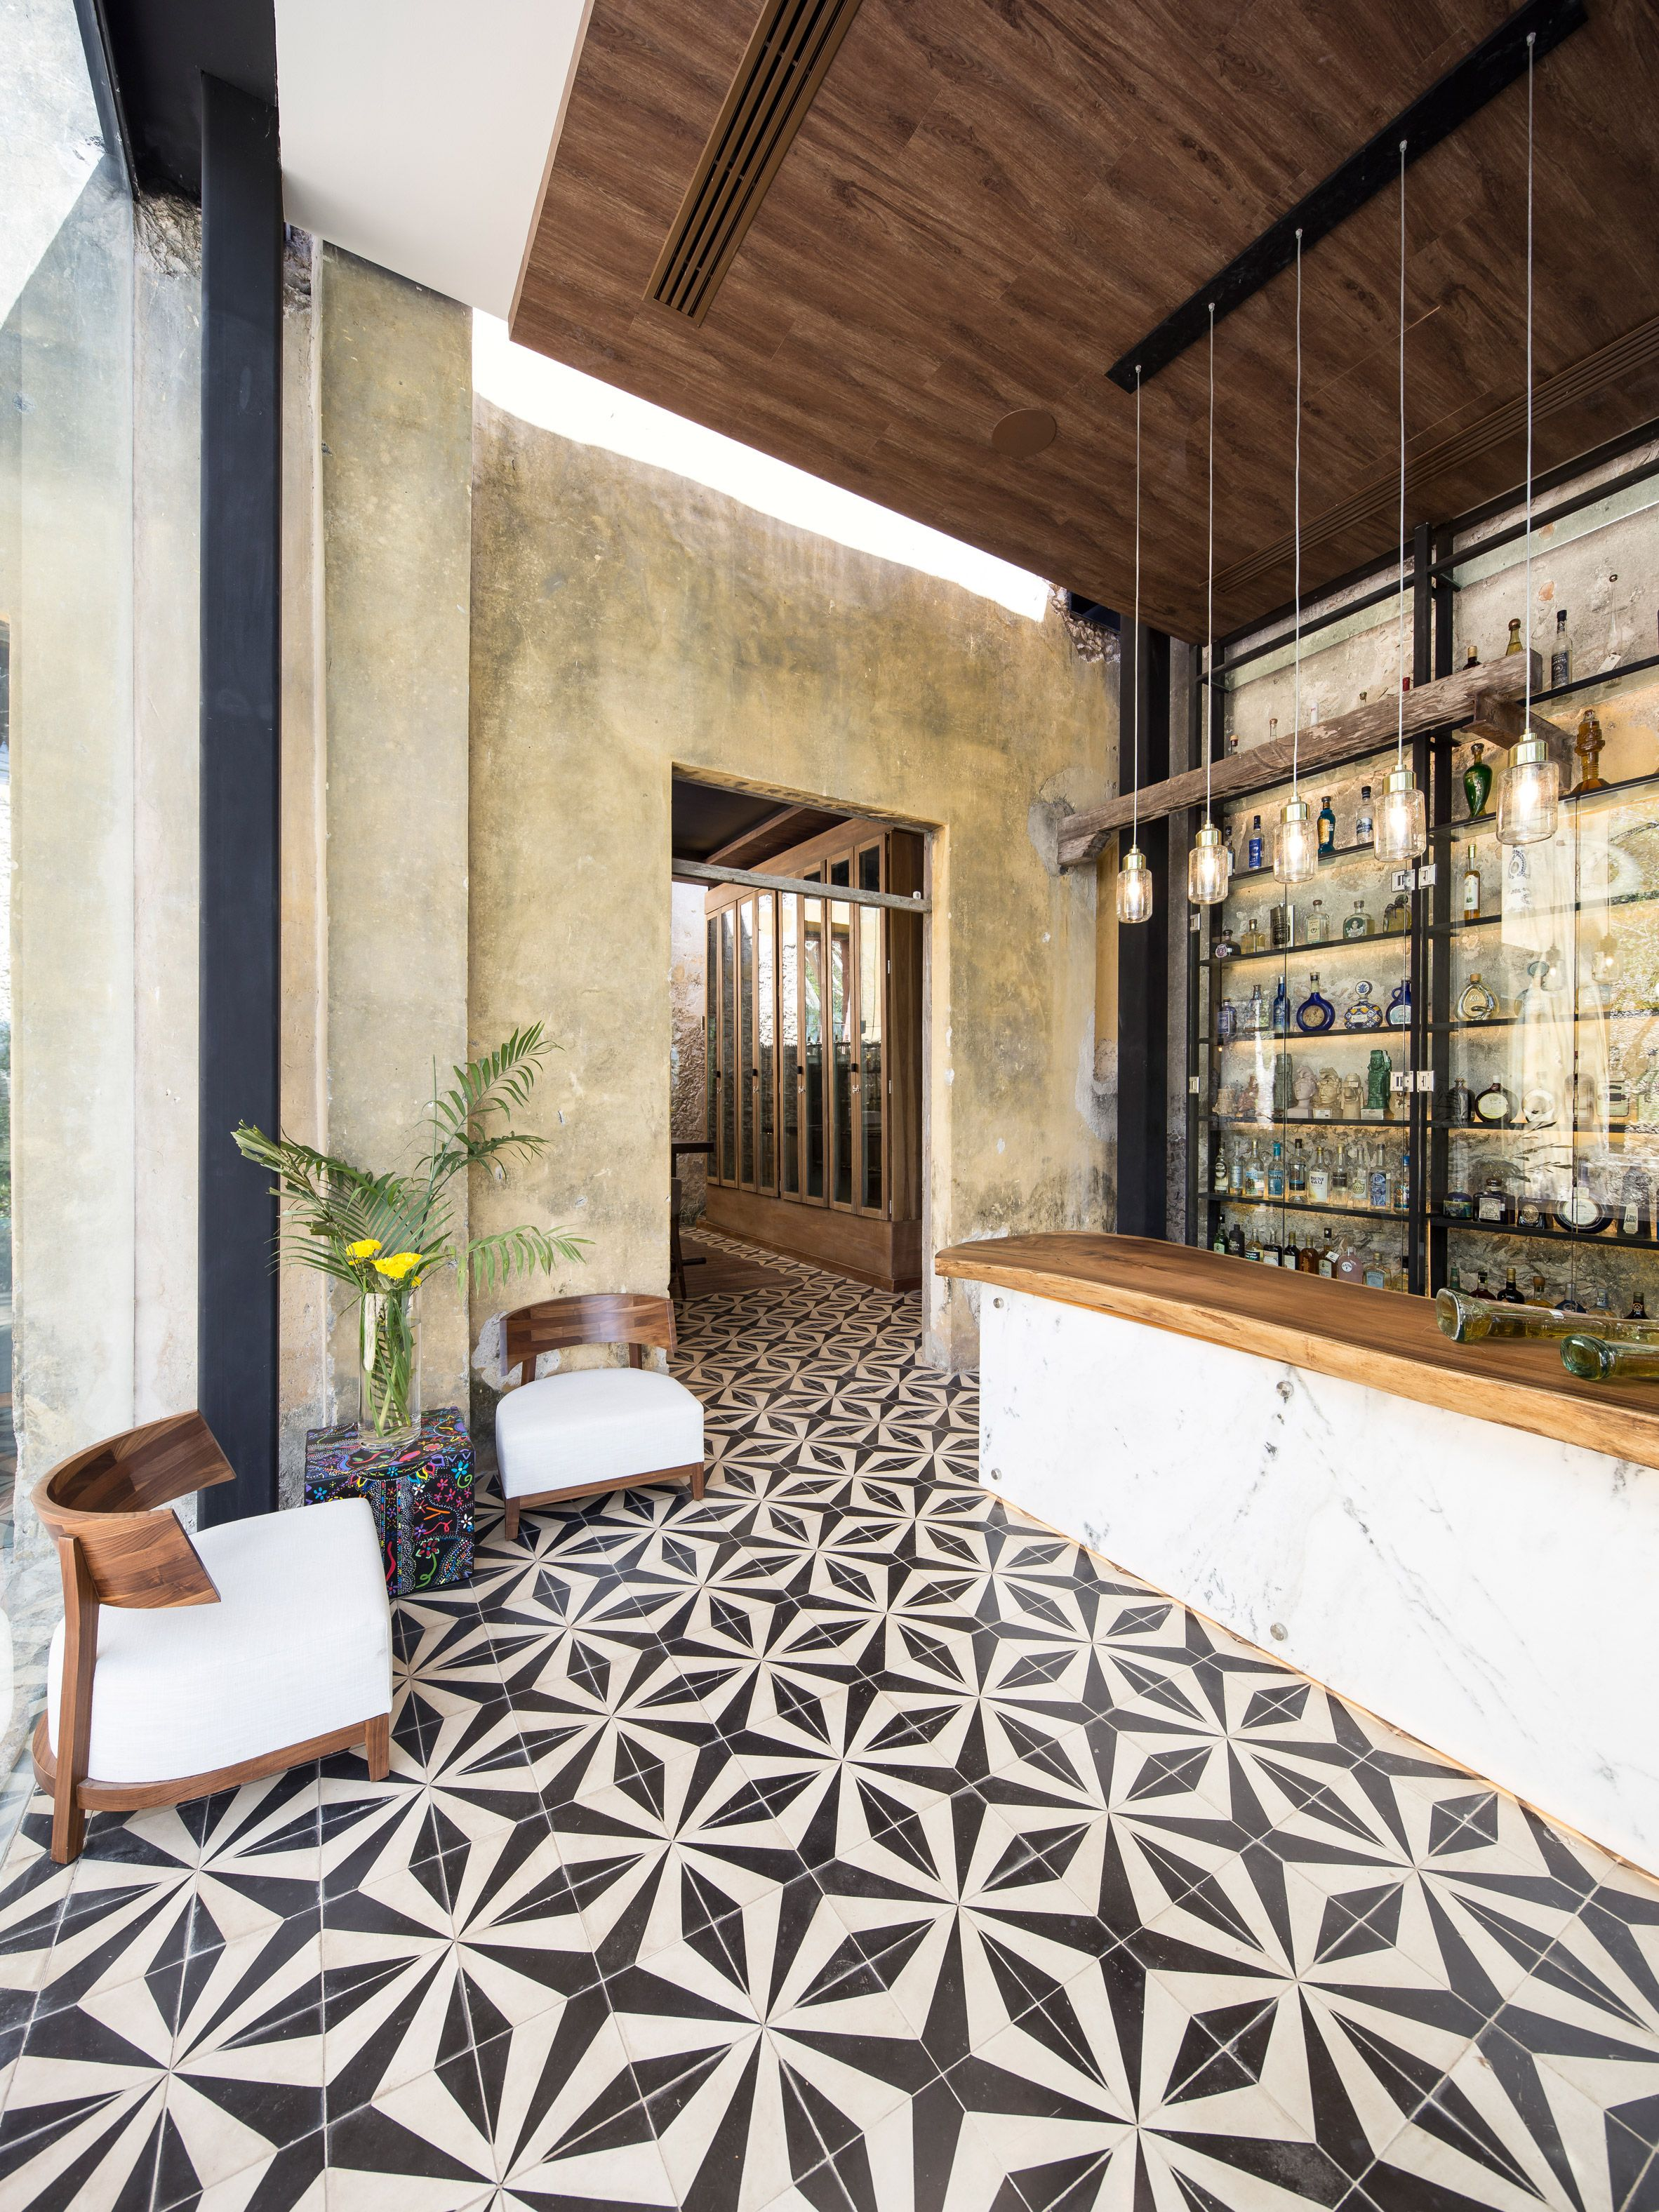 metal beams frame restaurant inserted inside old mexican textile factory